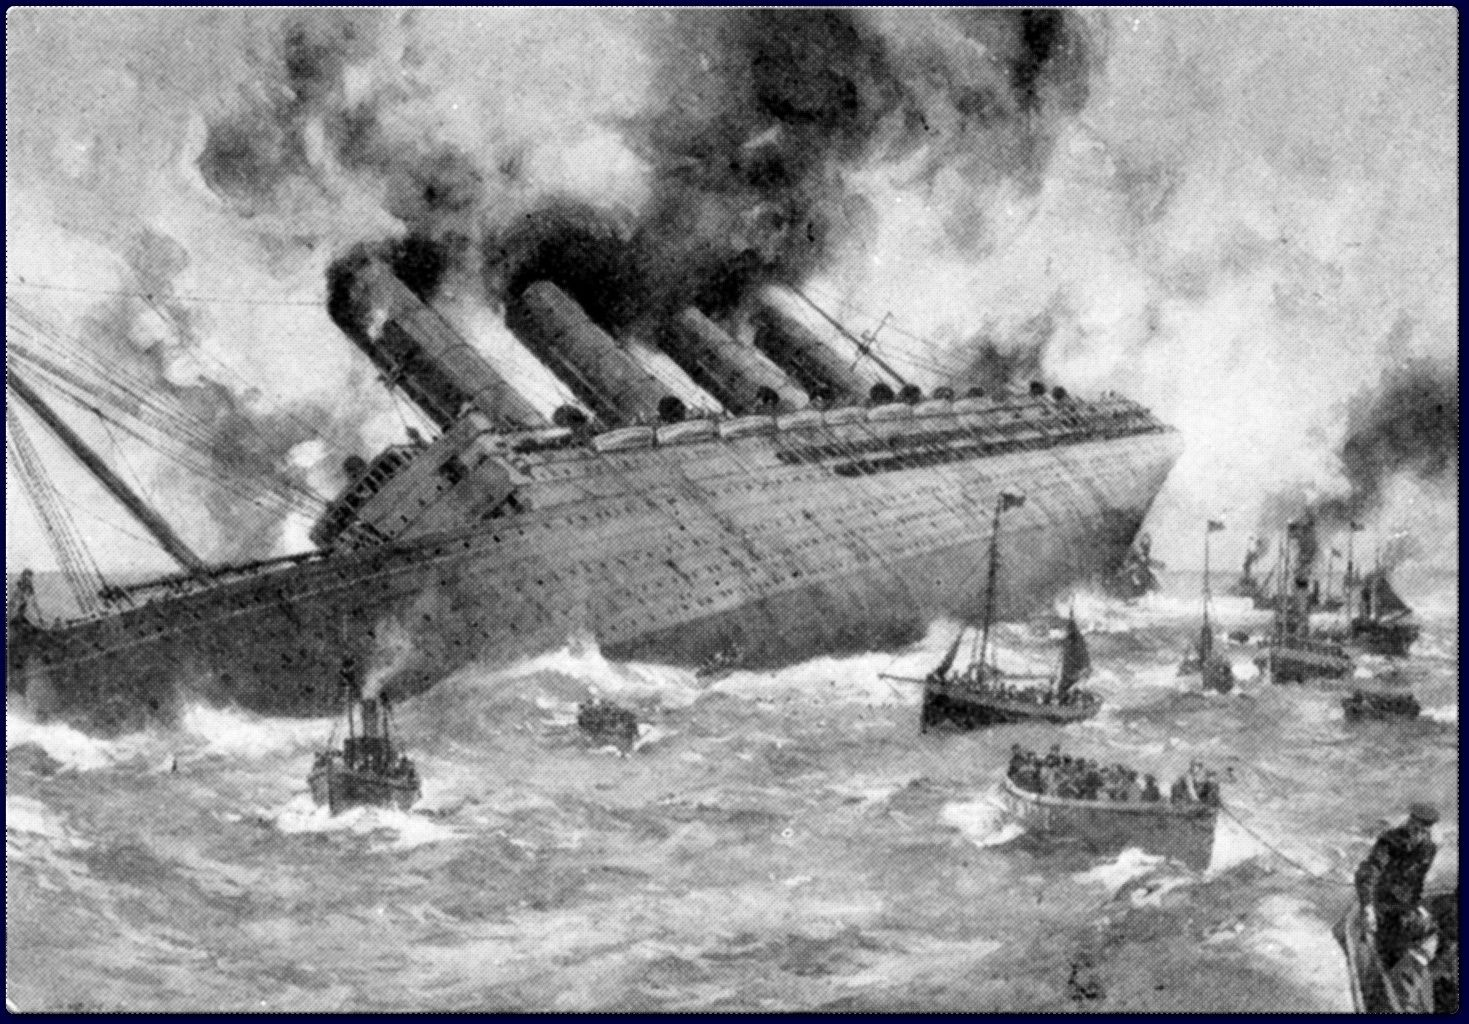 This picture shows the sinking of the Lusitania, this was one of ...